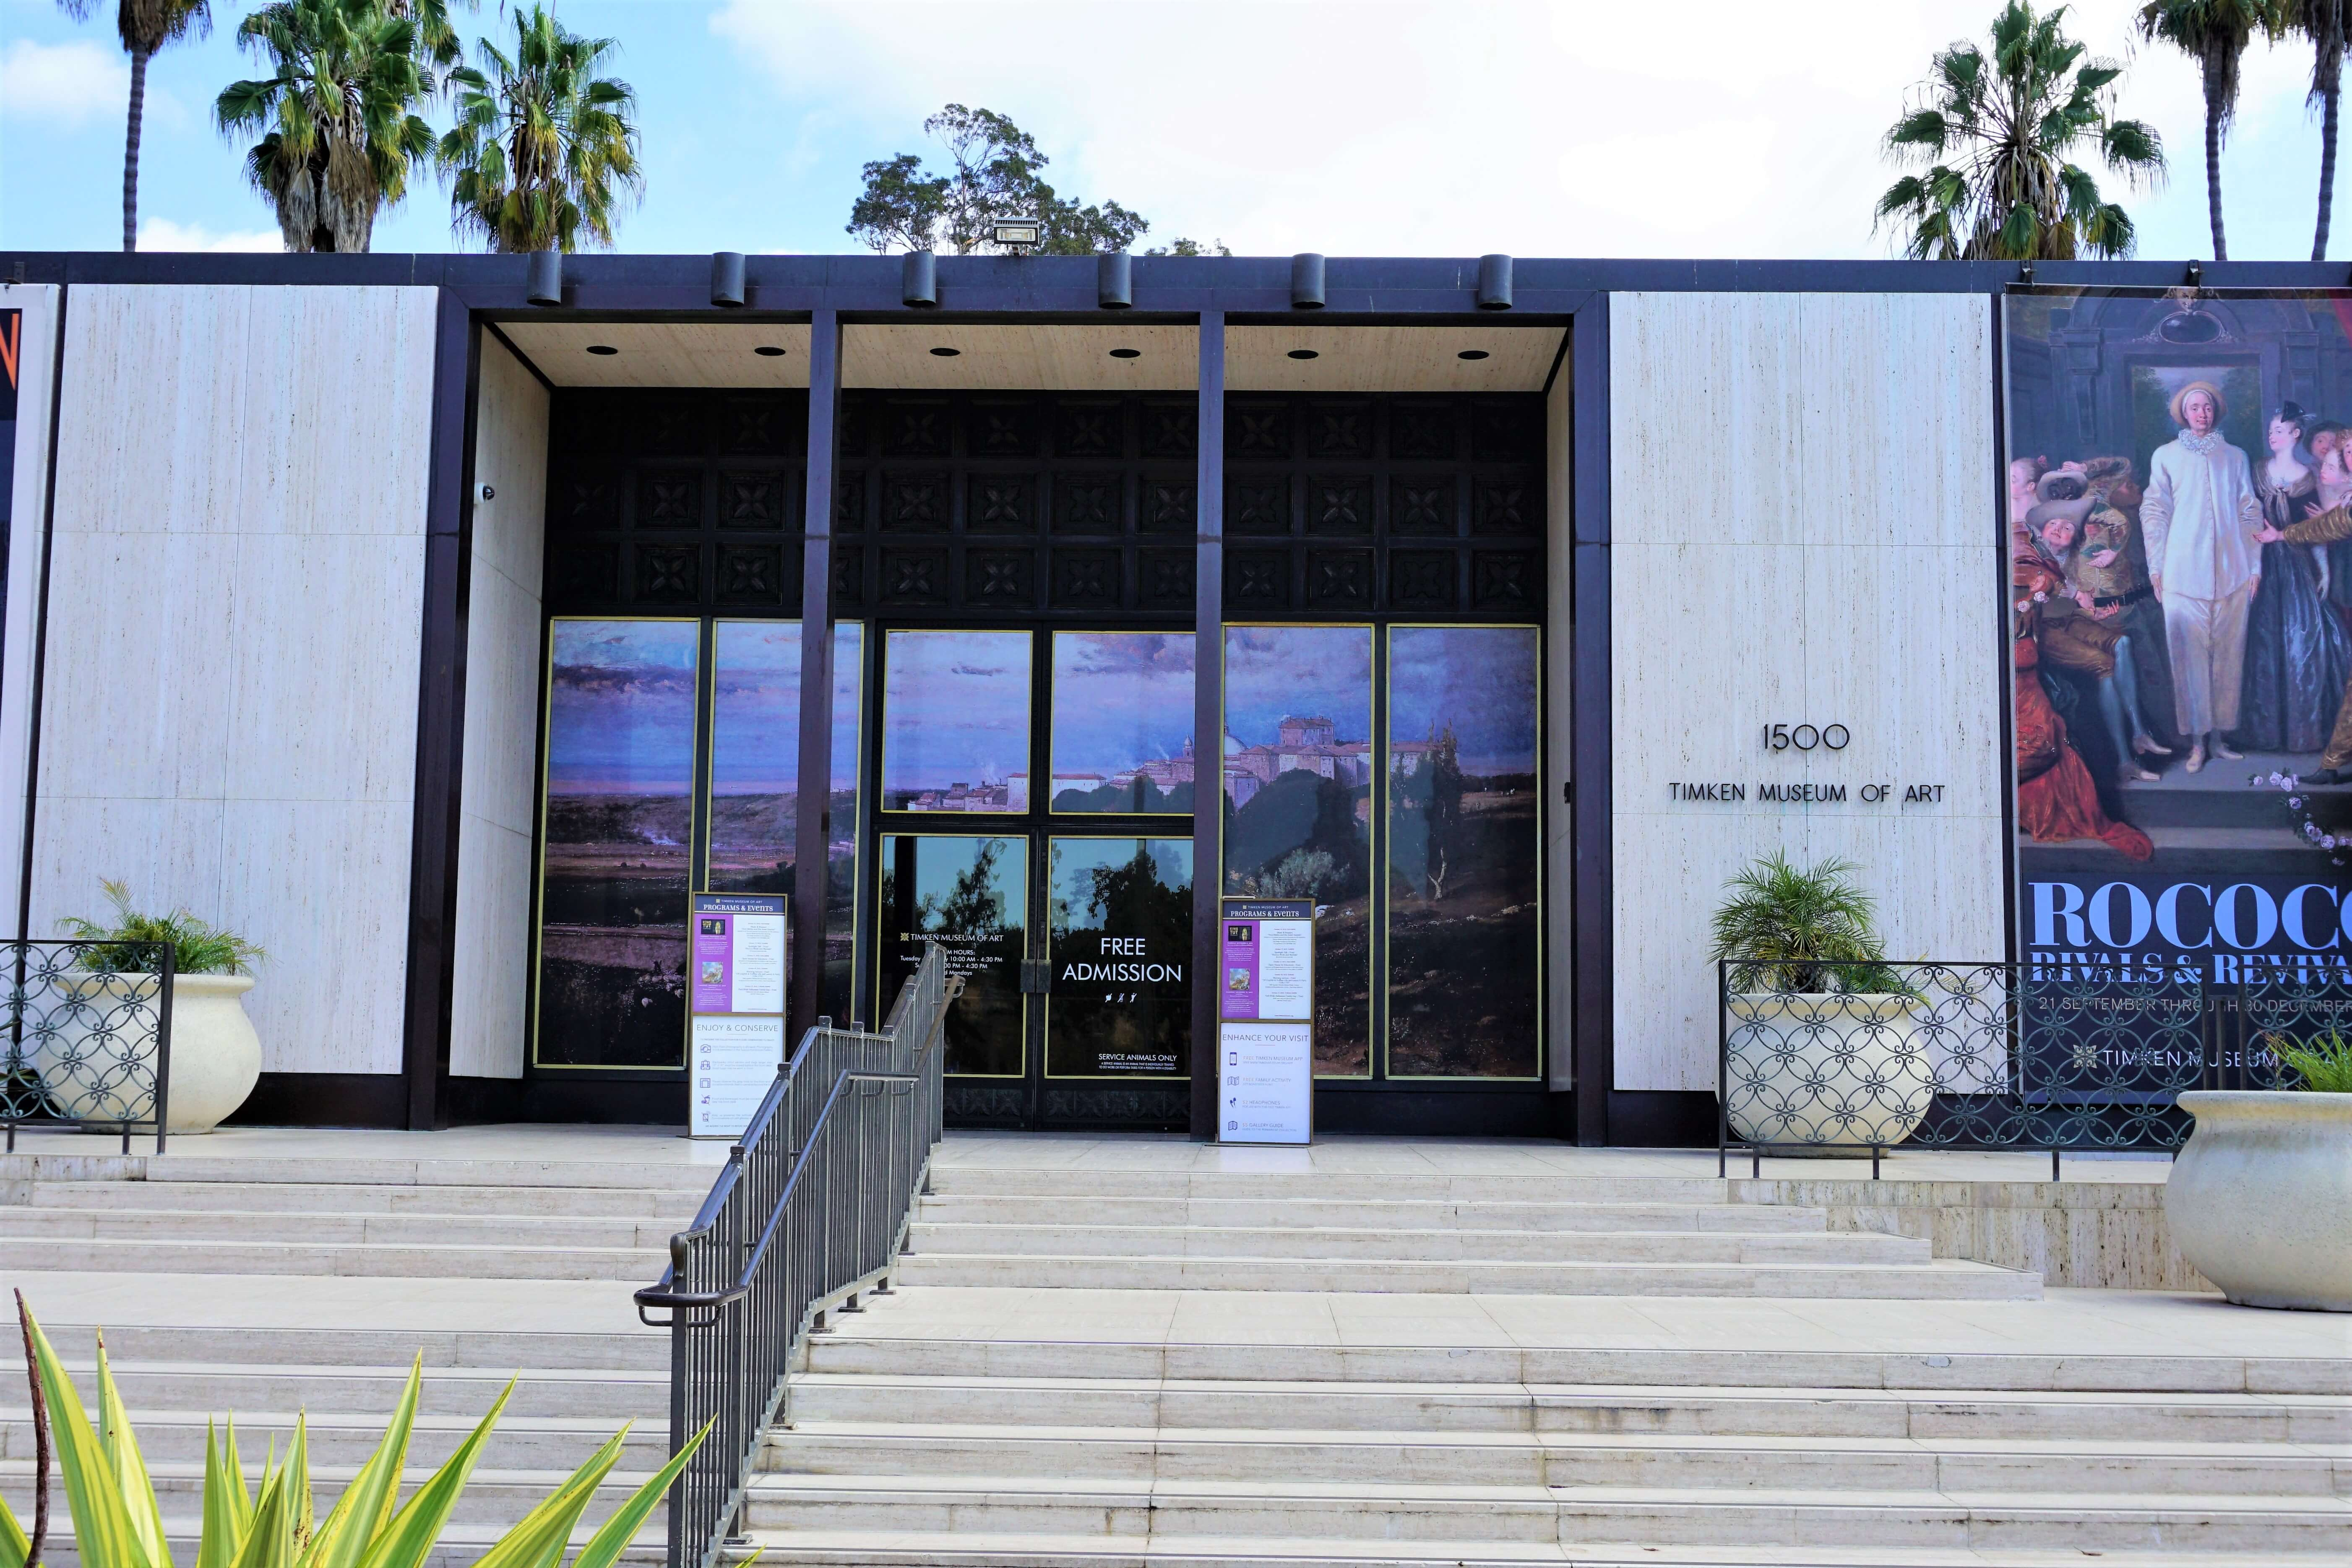 Exterior view of Timken Museum of Art in Balboa Park, San Diego